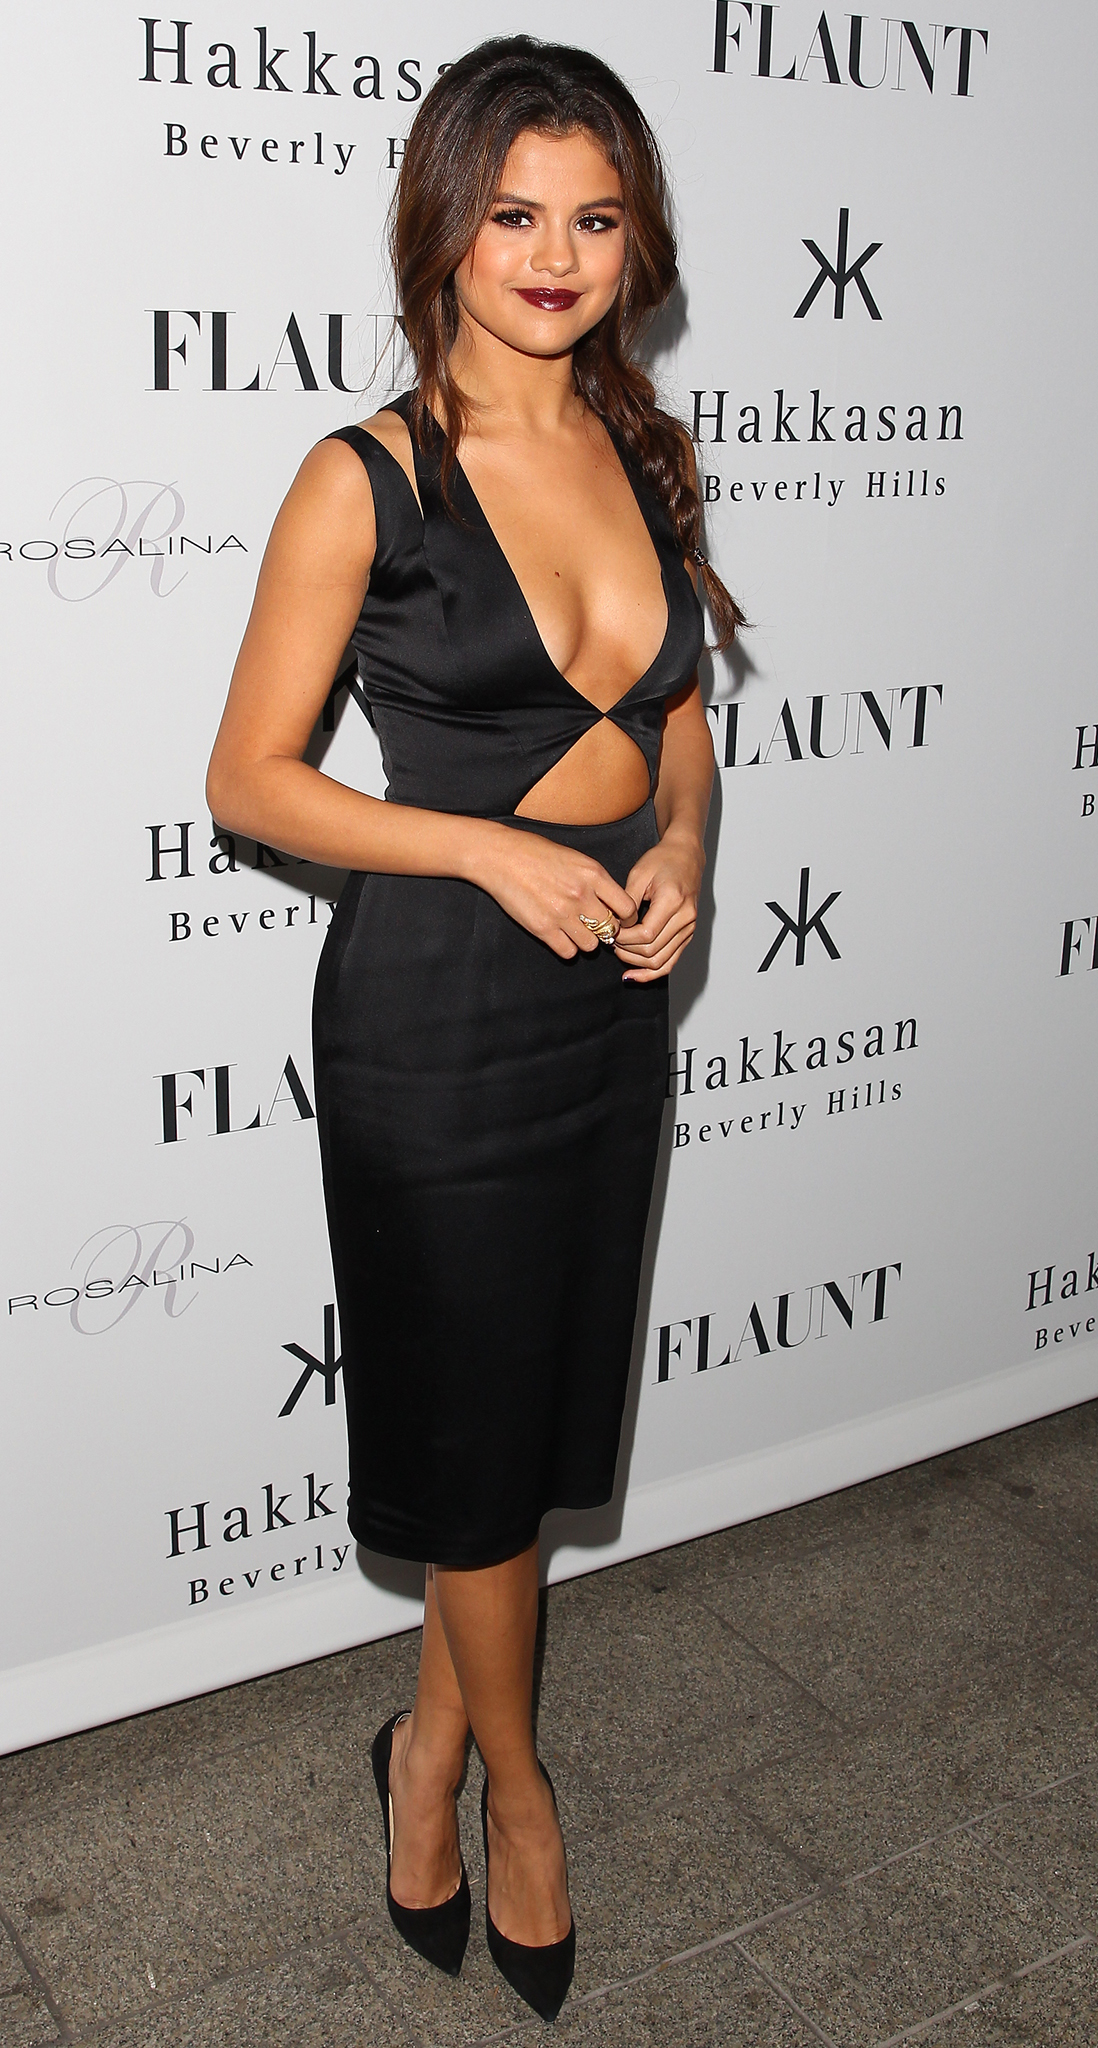 Selena Gomez at the Flaunt magazine party (Wireimage)